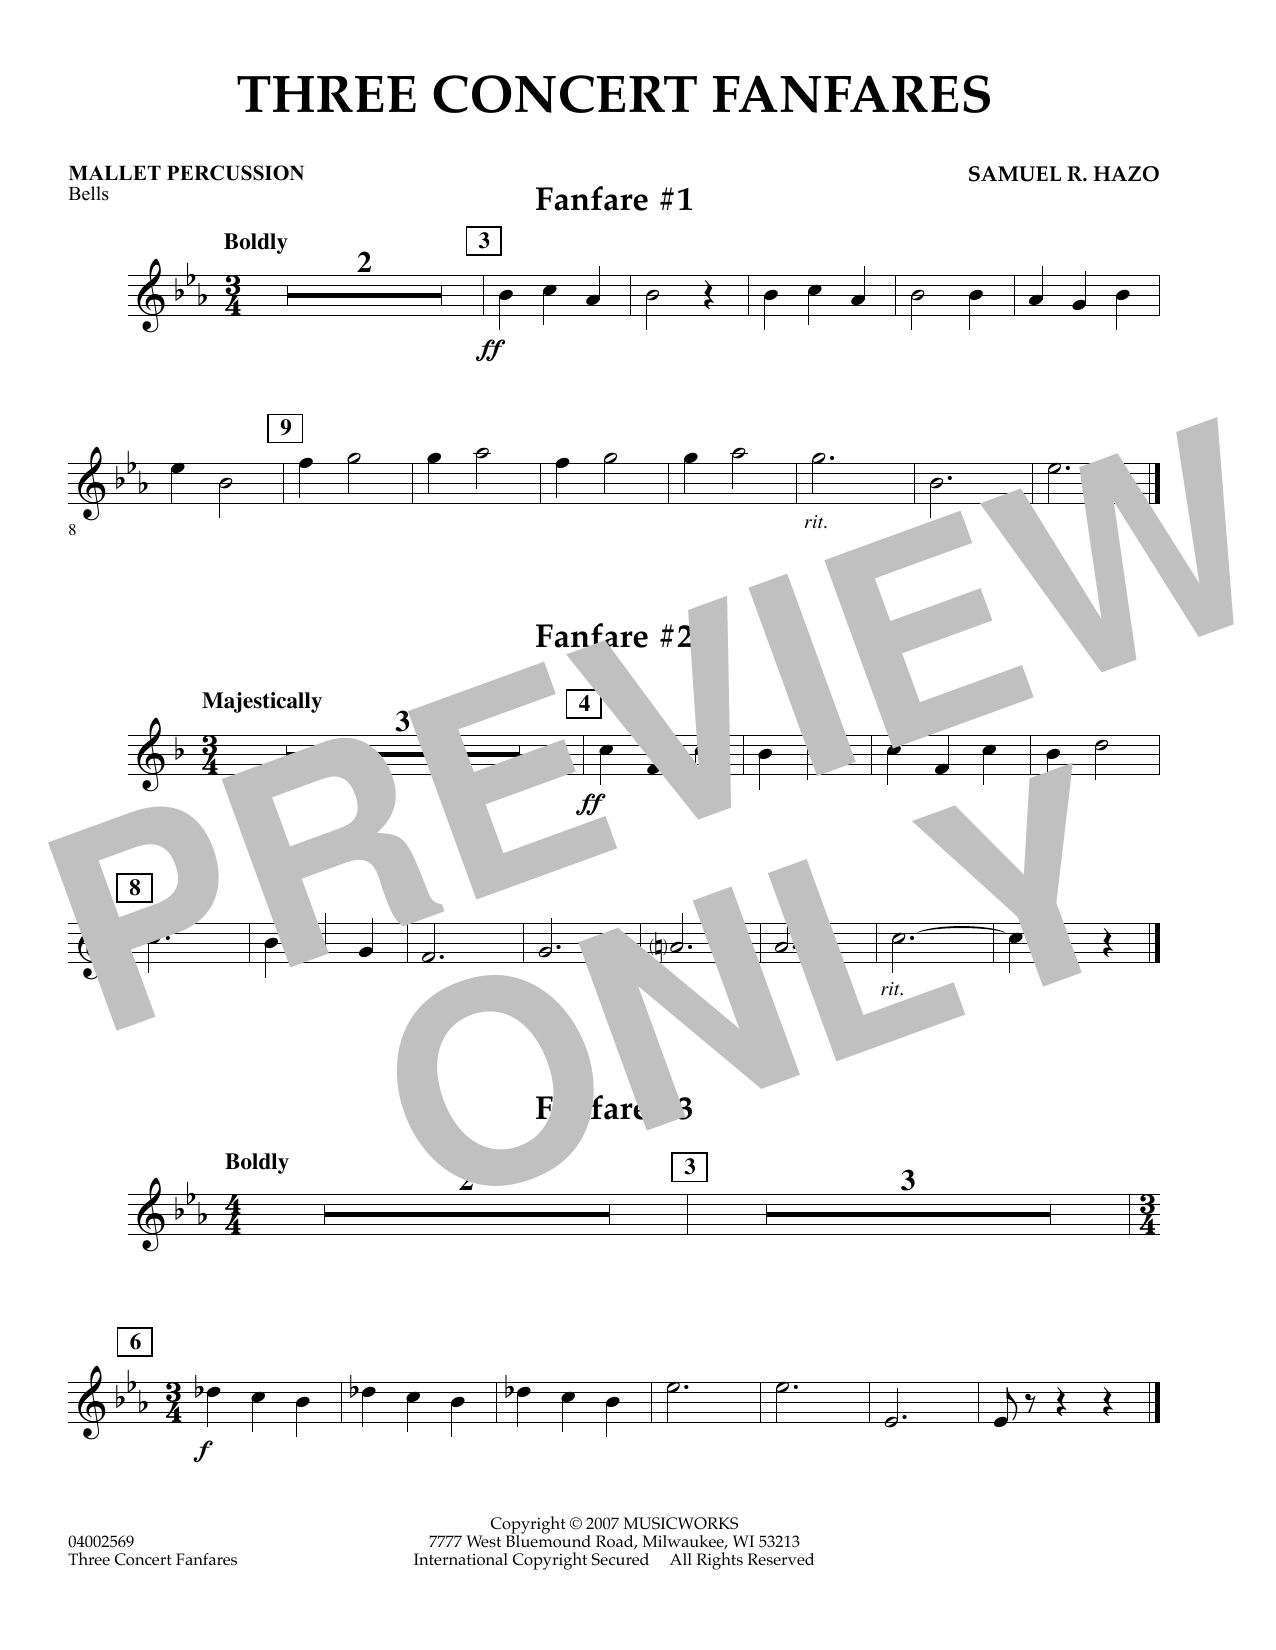 Samuel R. Hazo Three Concert Fanfares - Mallet Percussion sheet music preview music notes and score for Concert Band including 1 page(s)